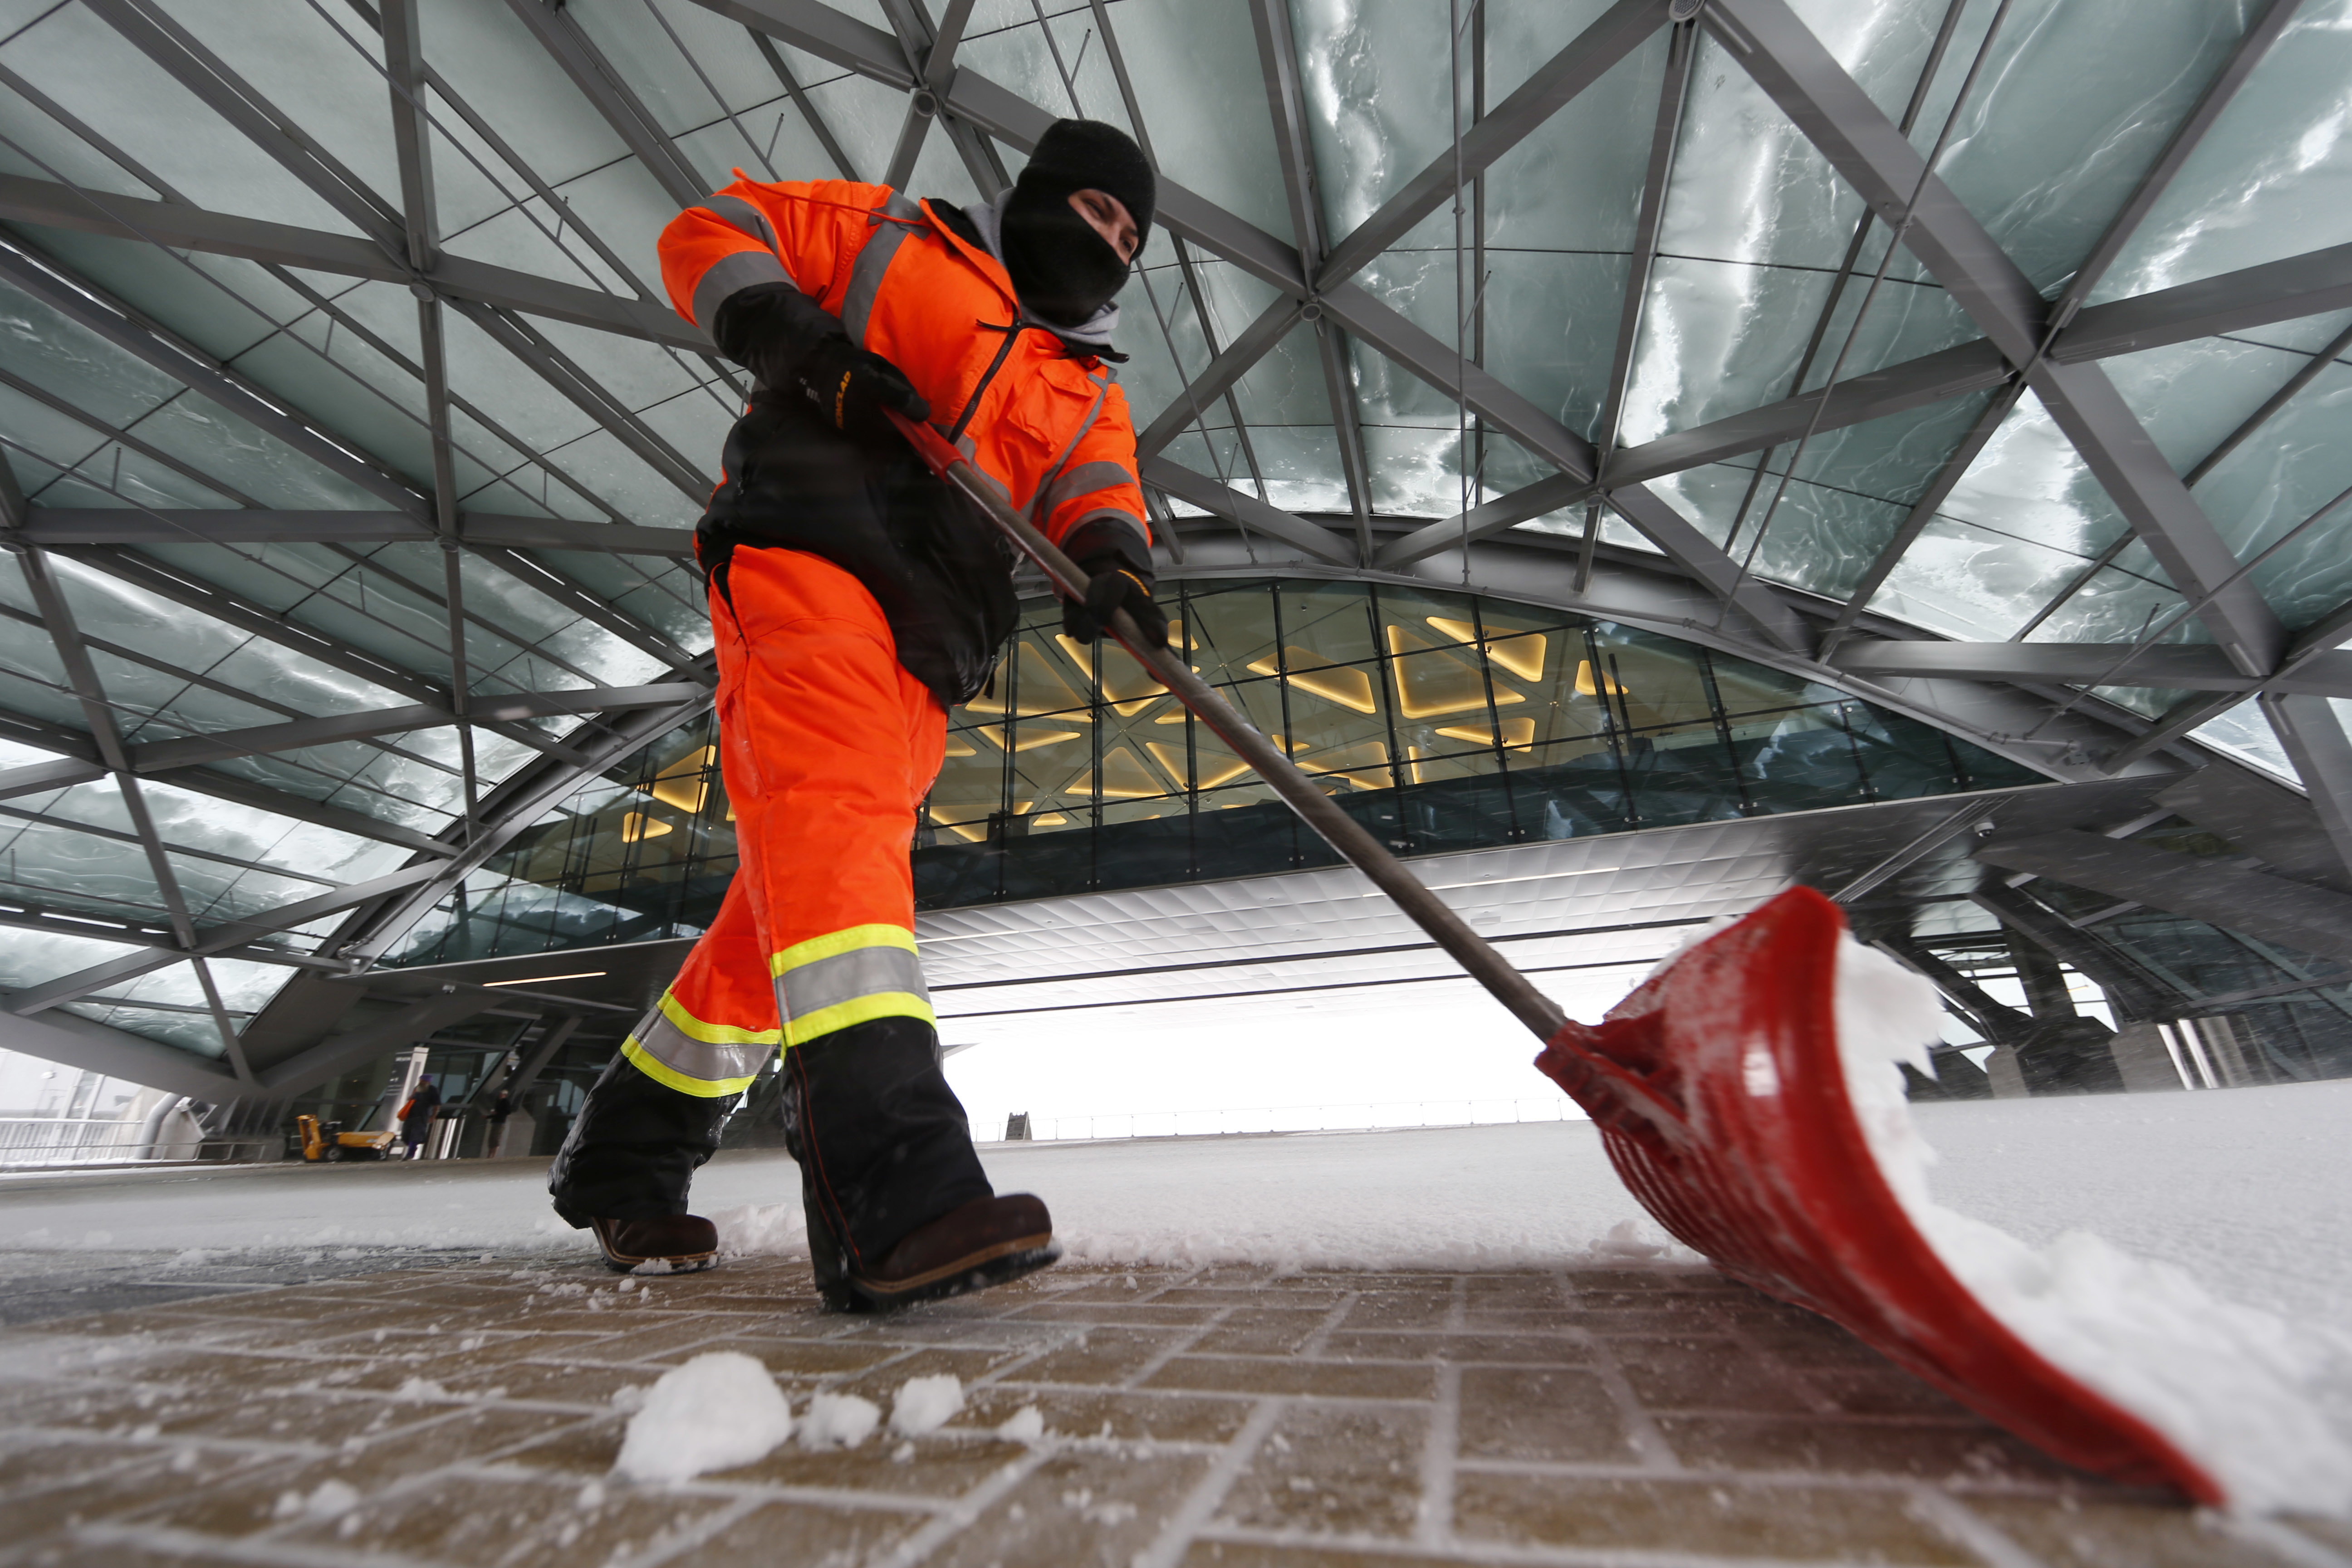 <p>Joseph Dominguez uses a shovel to clear snow between the main terminal of Denver International Airport and the adjoining hotel Saturday, April 16, 2016, in Denver.</p>